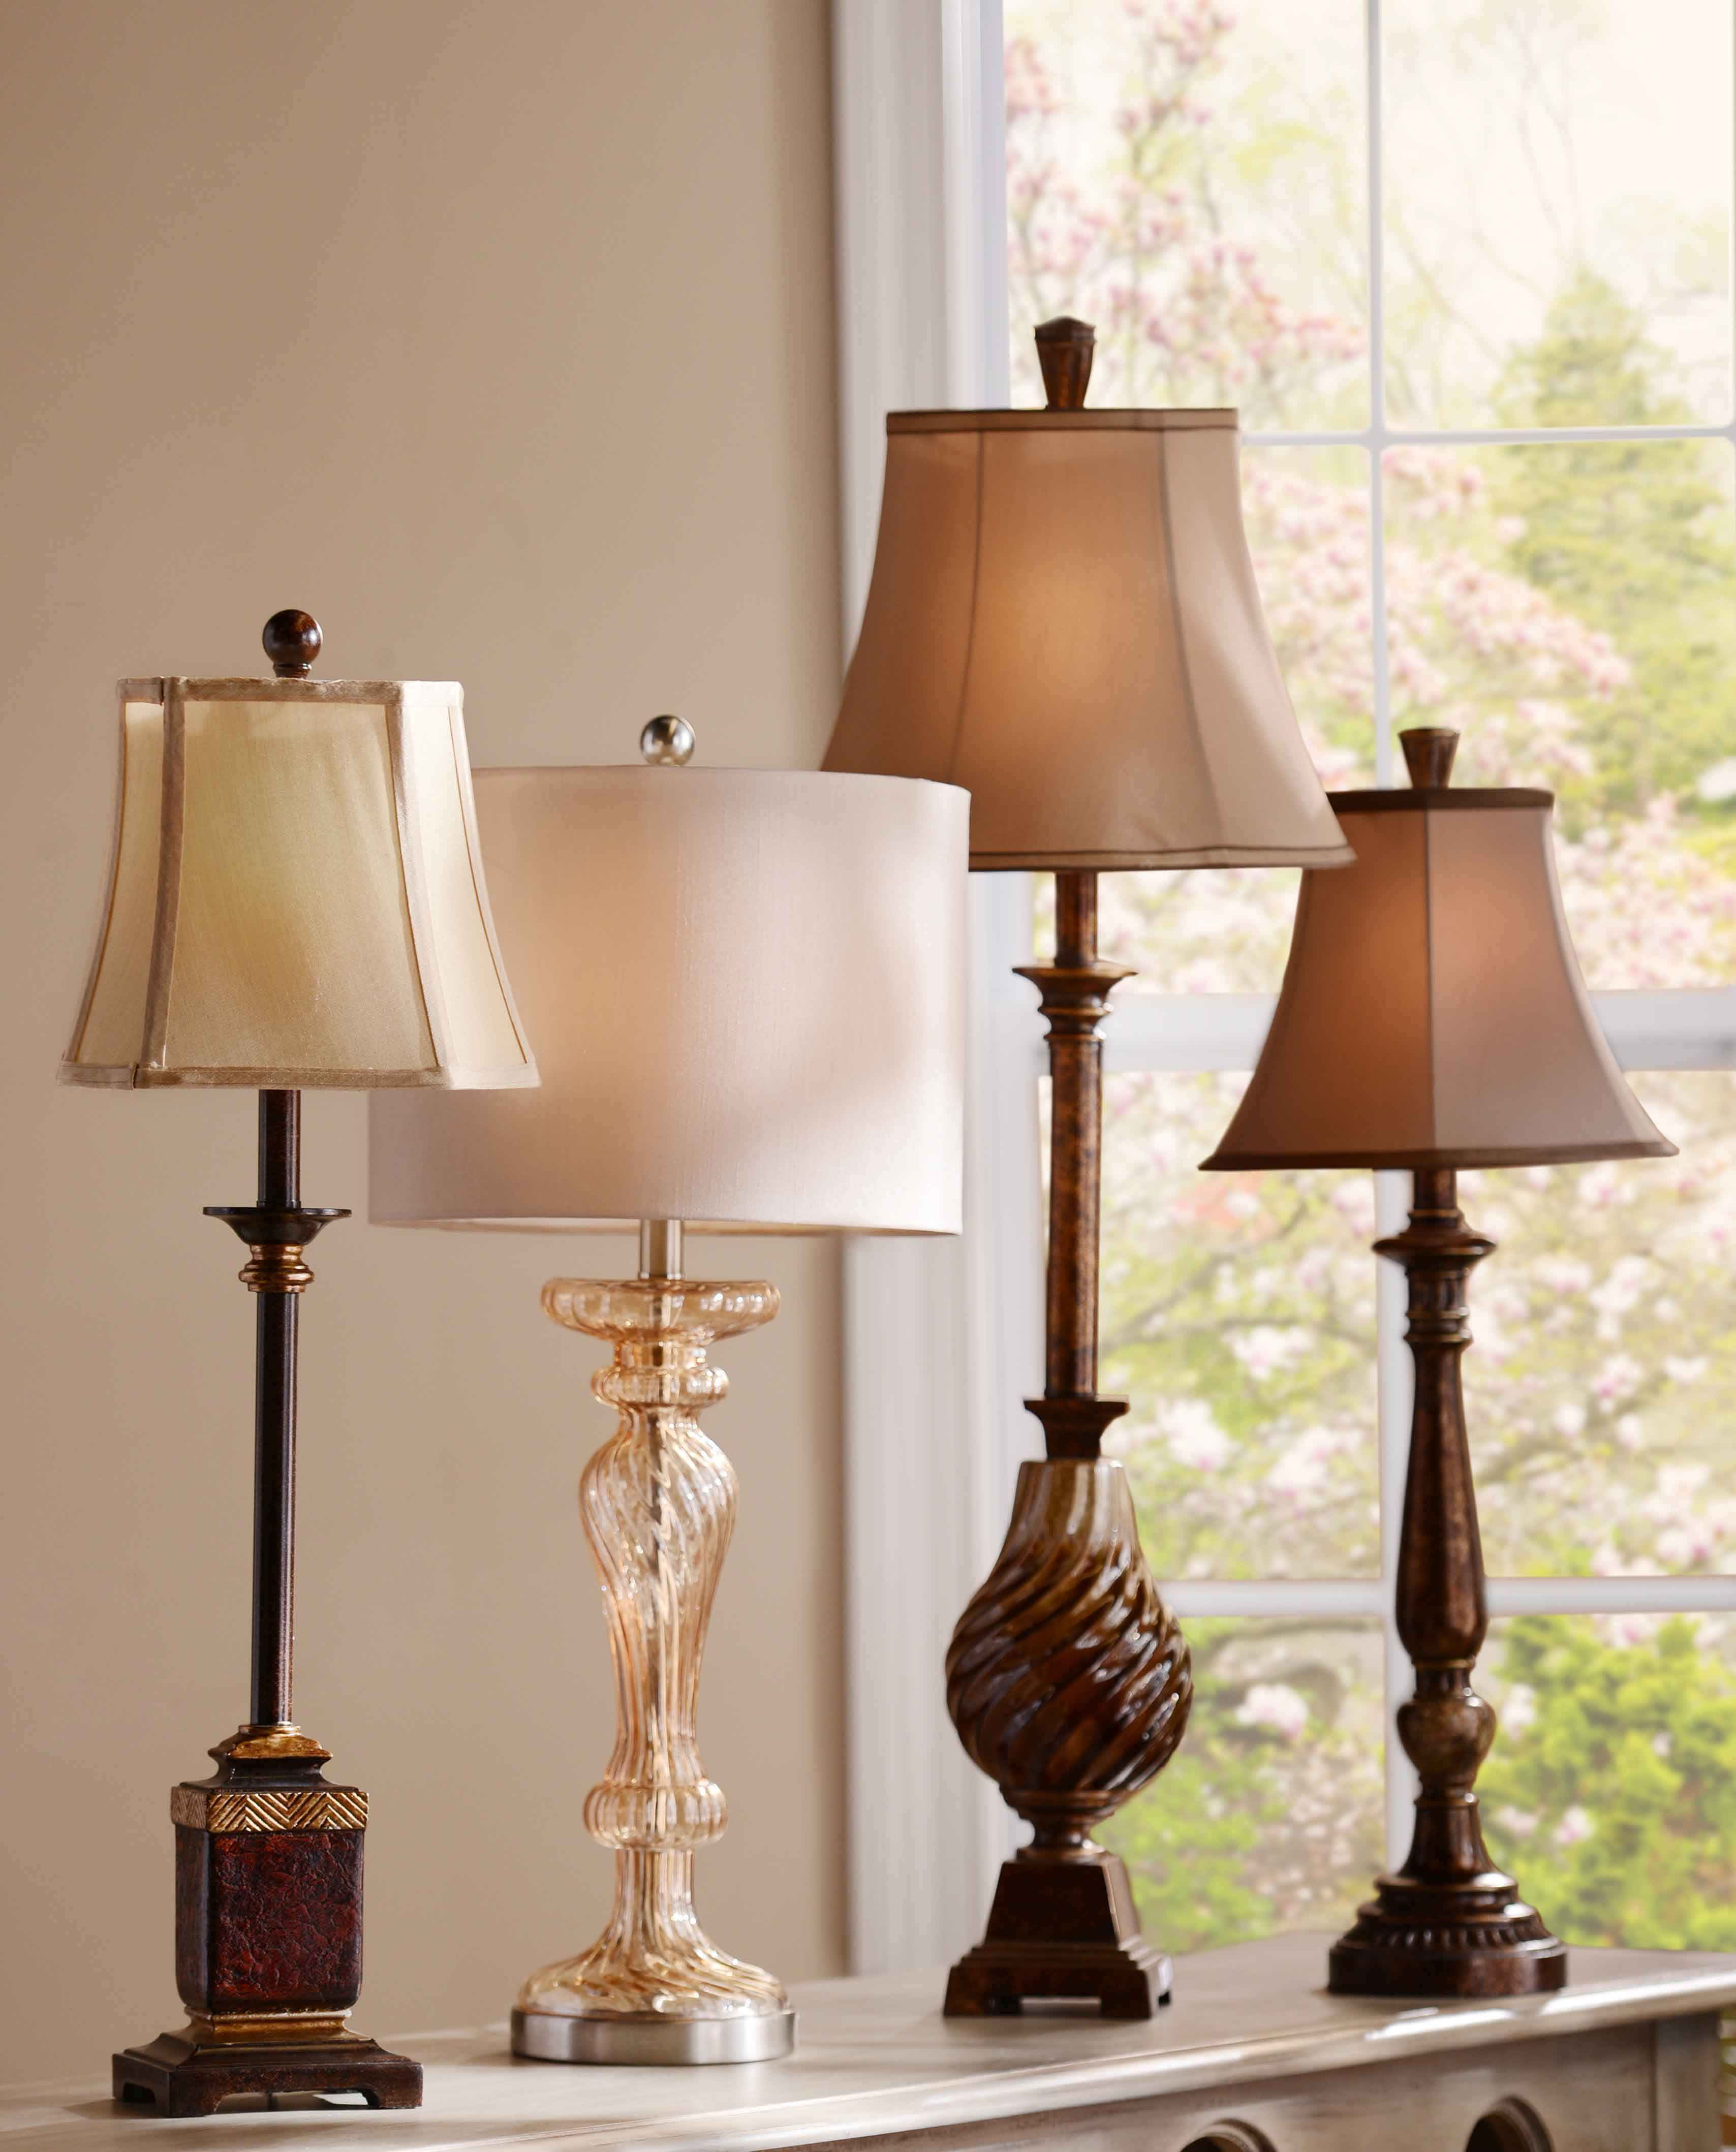 Kirkland Floor Lamps A Little Glamchic For Your Table #kirklands #glamchi #tablelamps